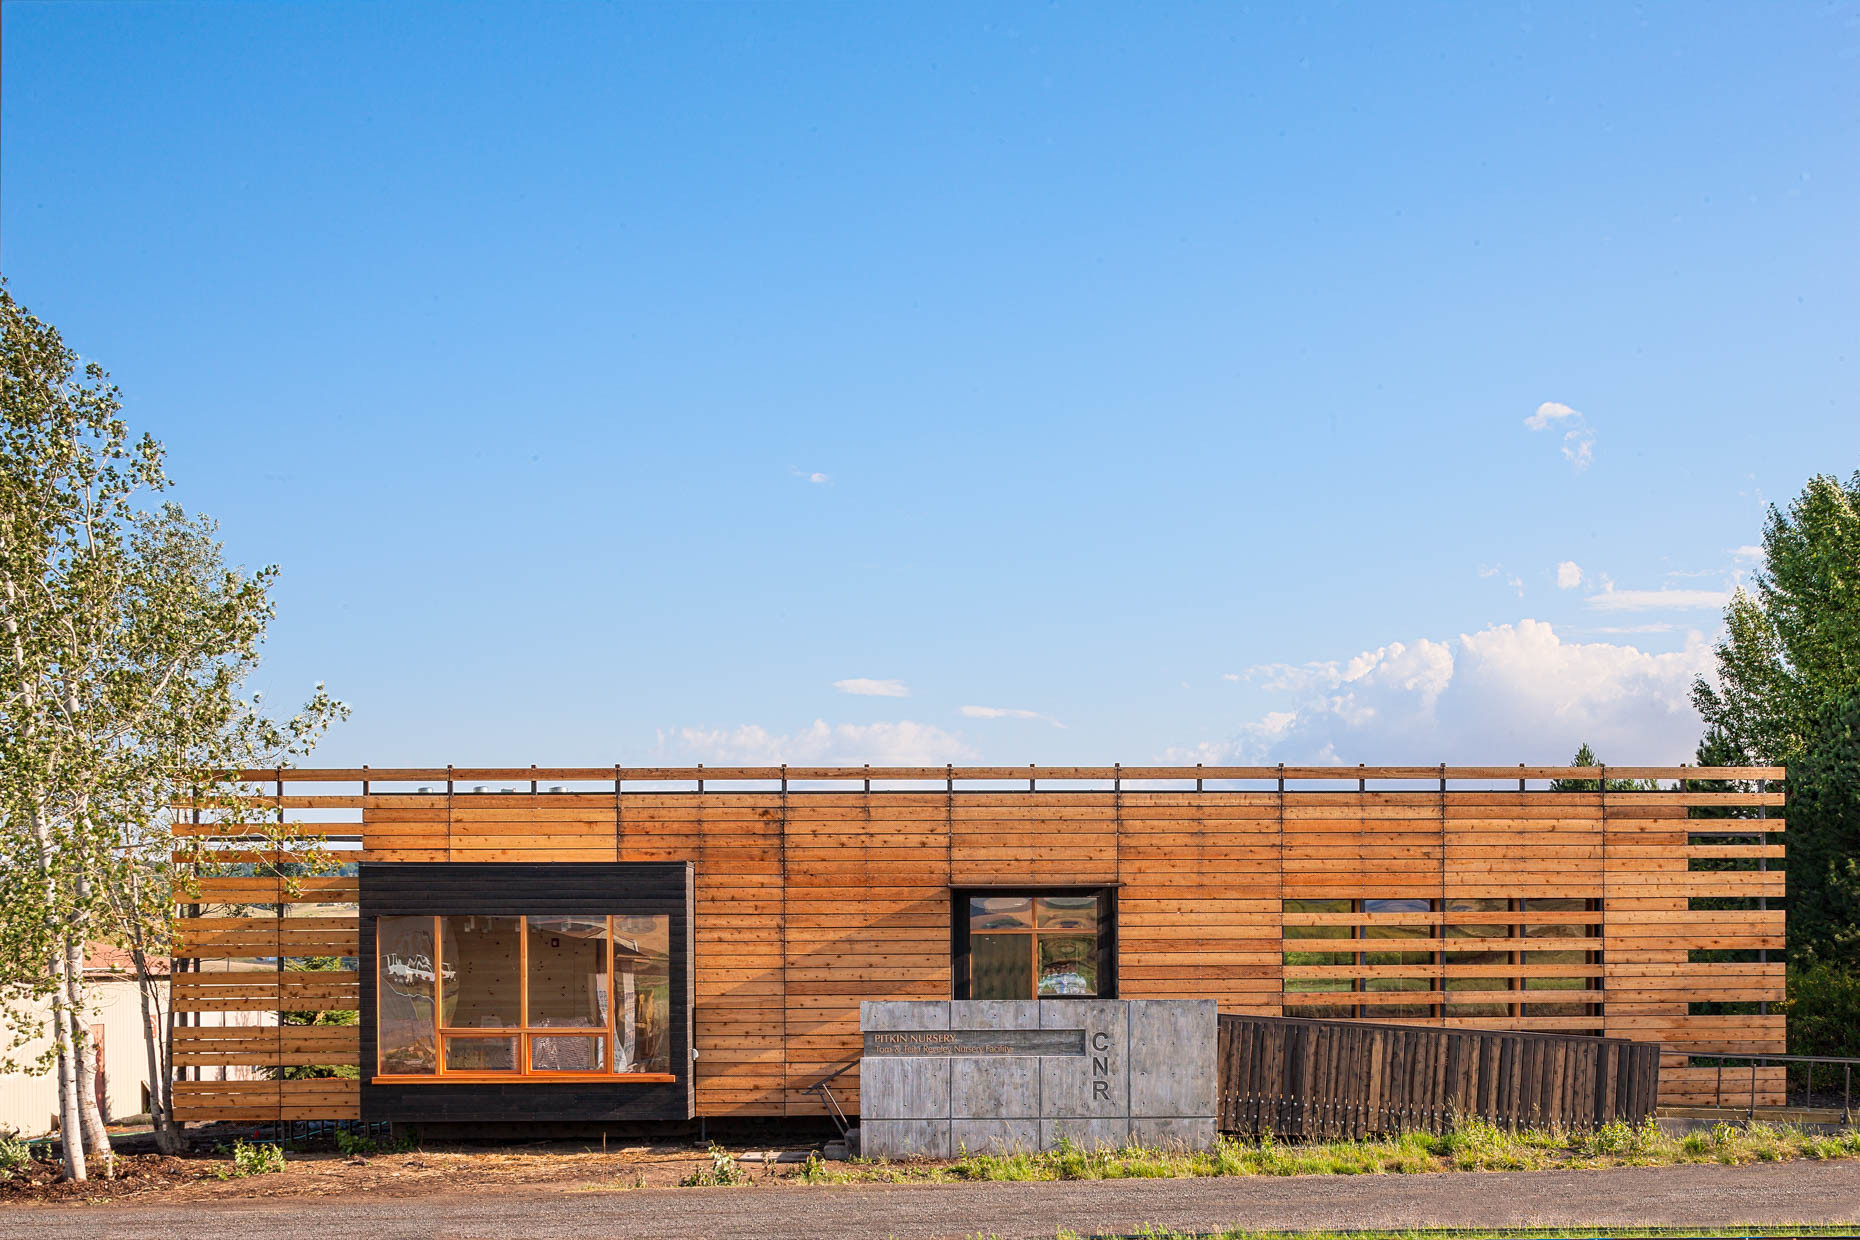 Reveley Classroom Building Patano Studio Architecture ArchDaily - University of idaho architecture